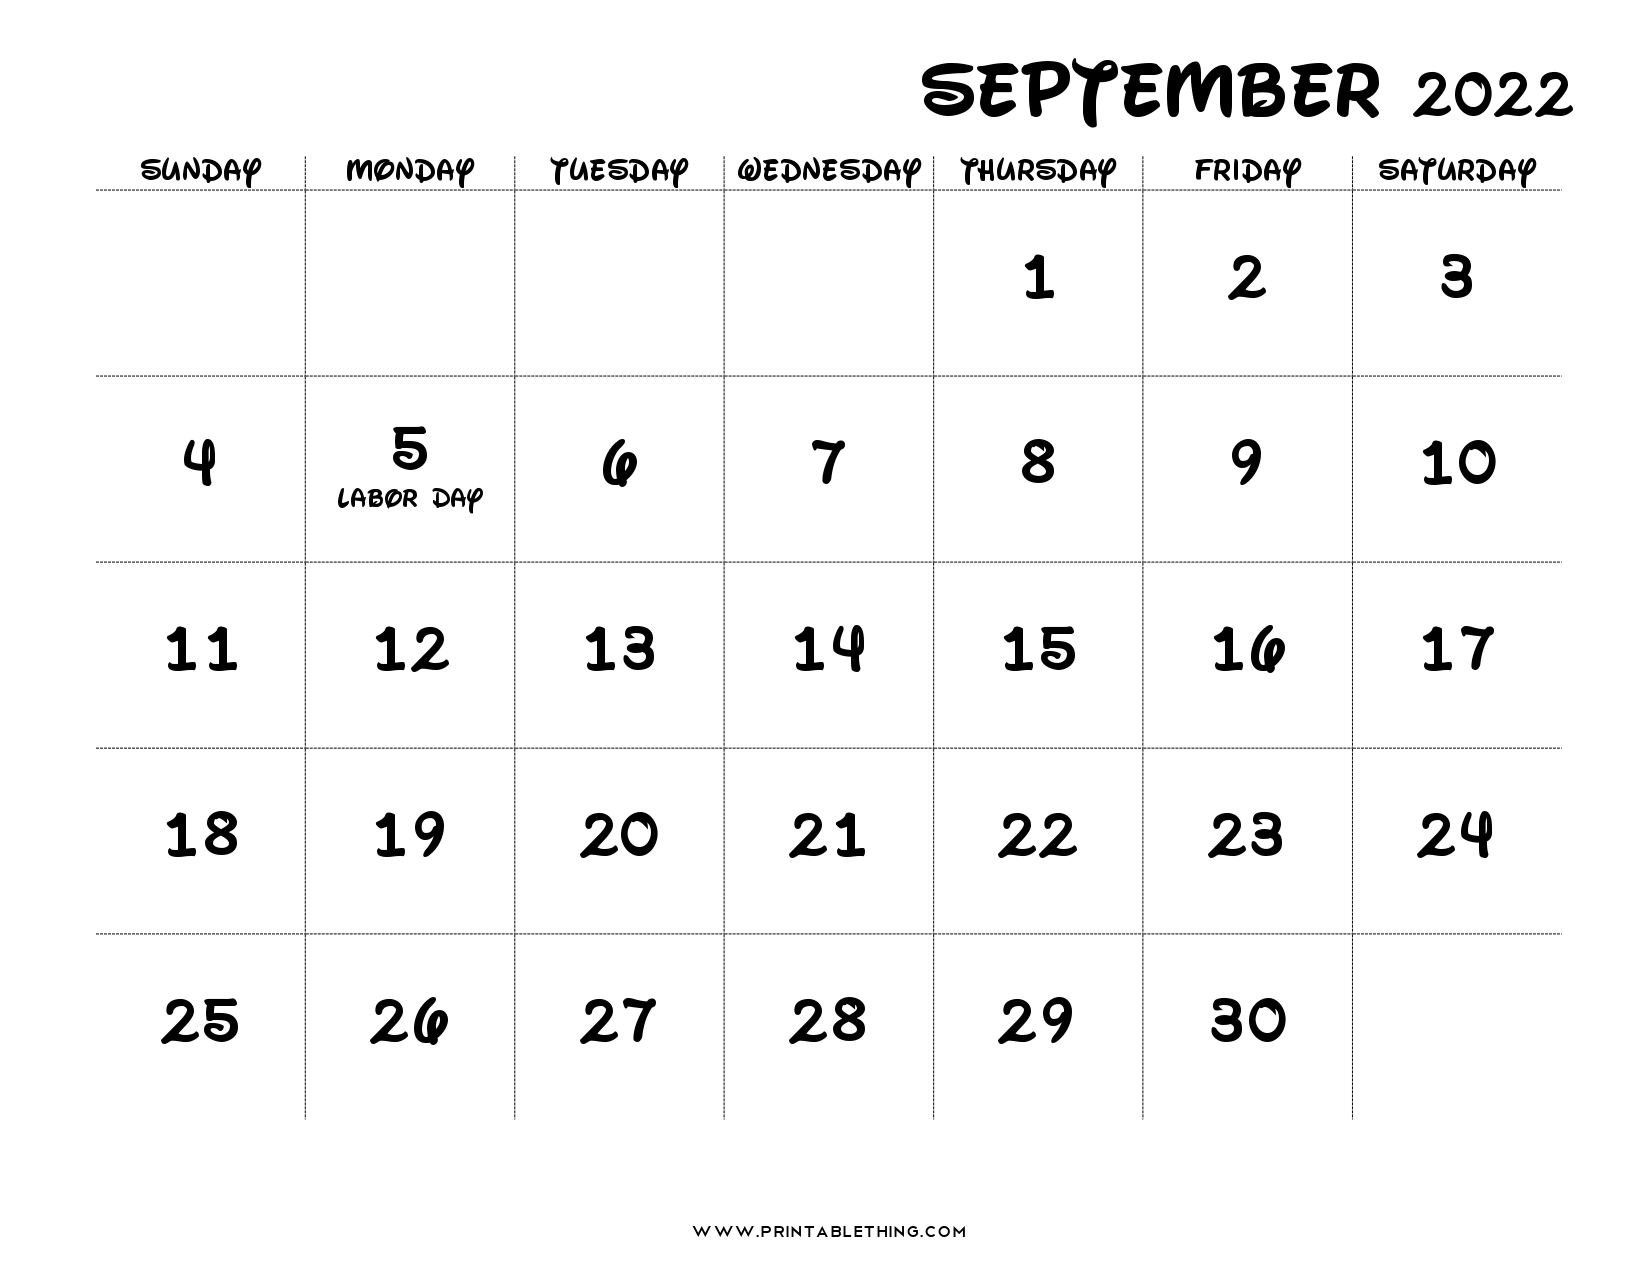 Sometimes it is handy to have a calendar for your current month on your cubical wall. 20+ September 2022 Calendar   Printable, PDF, US Holidays ...